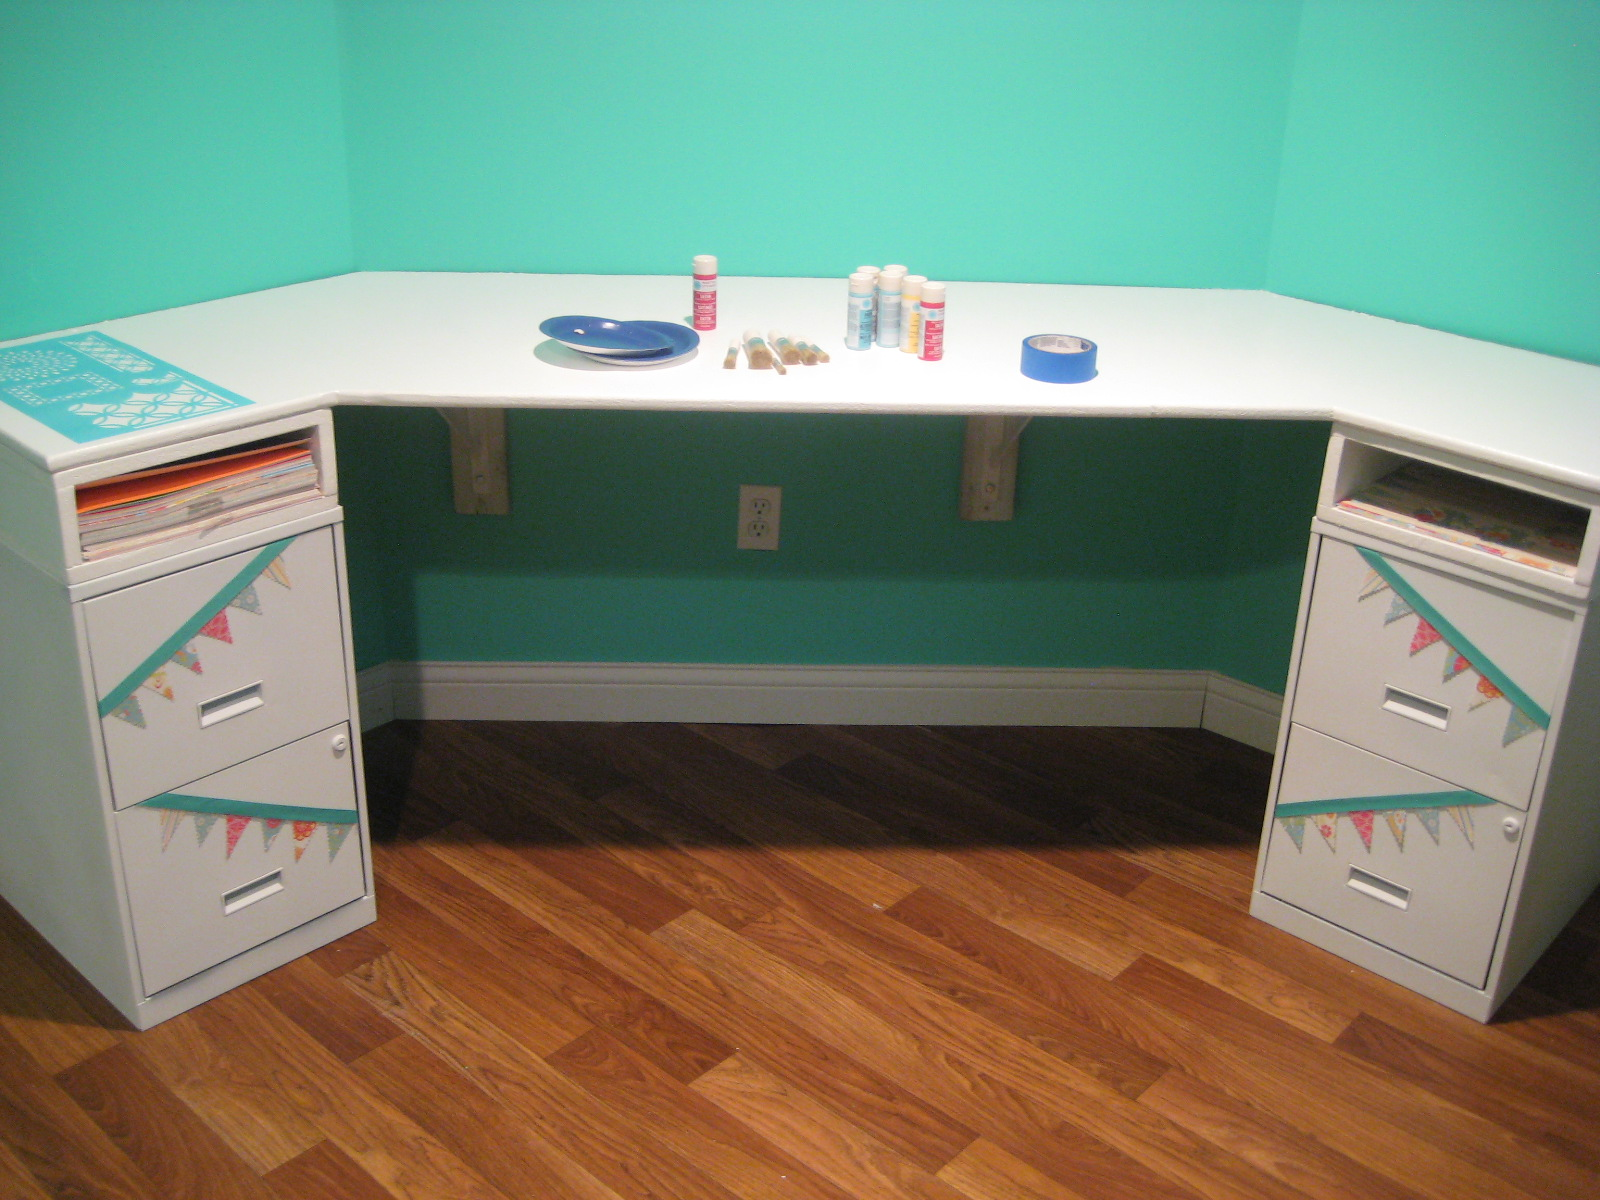 Repainted The Desk BRIGHT White, Spray Painted, And Bunted The Filing  Cabinets.